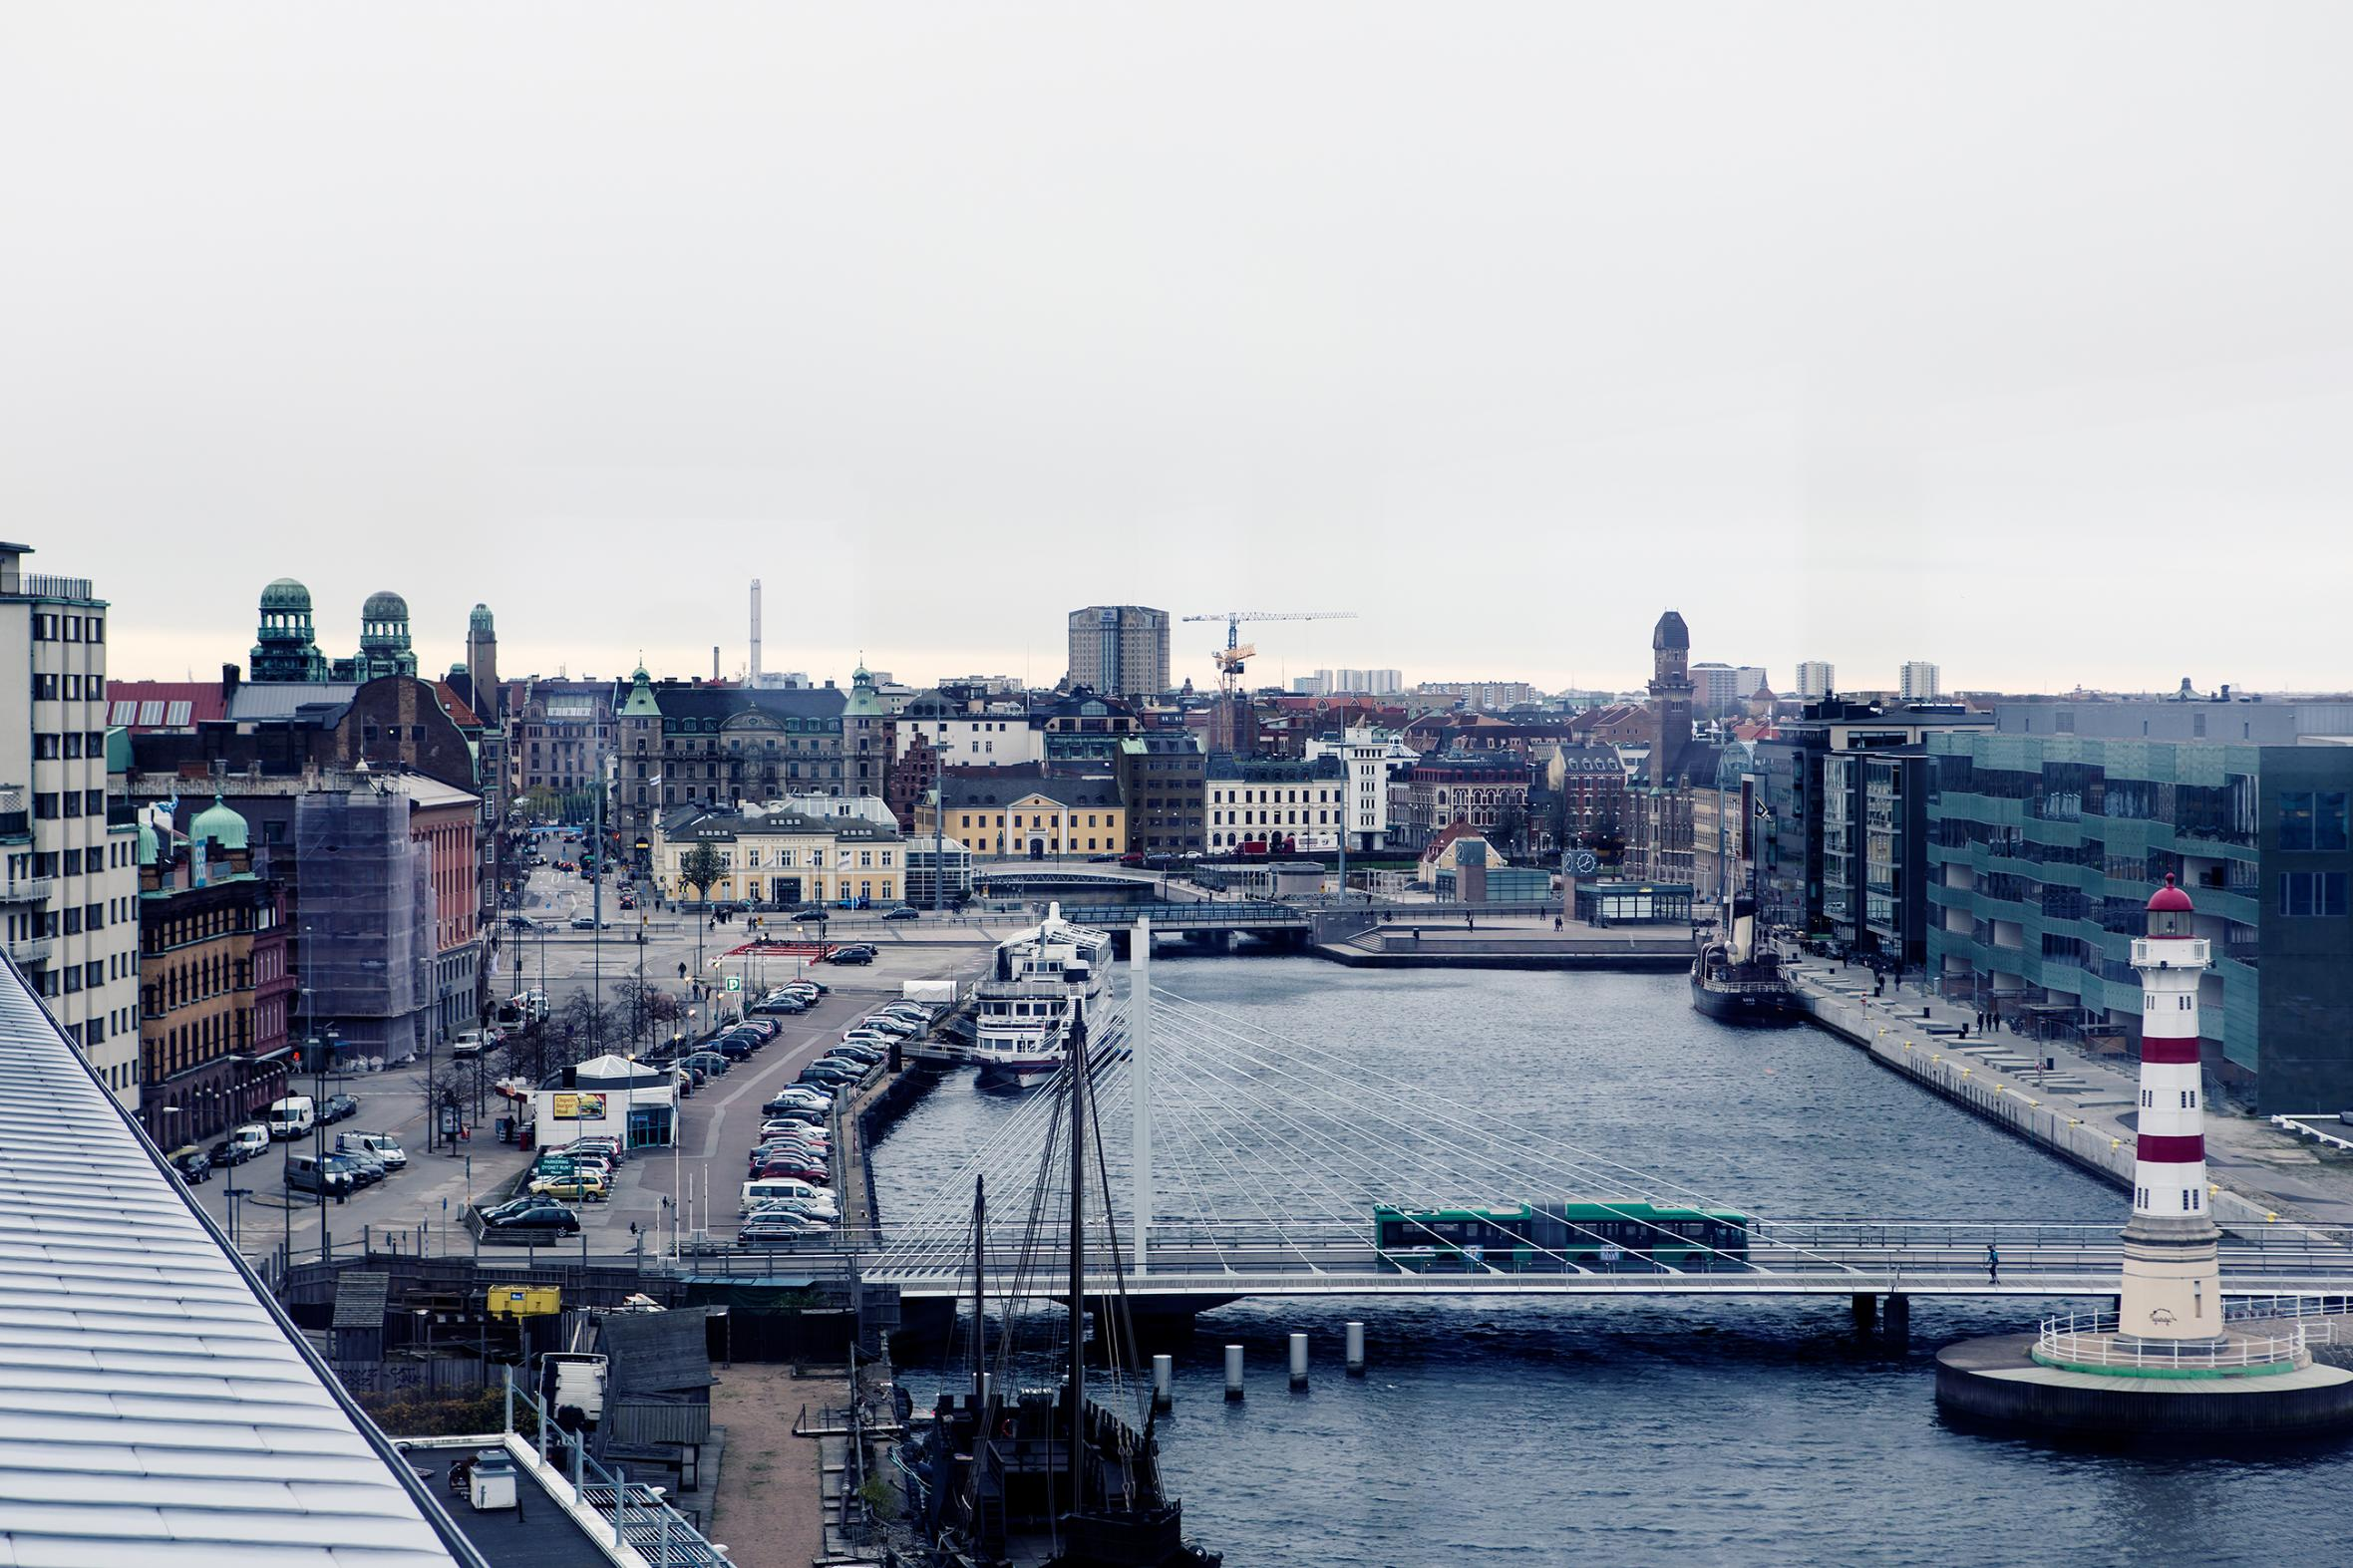 View over Universitetsholmen and Skeppsbron in Malmö